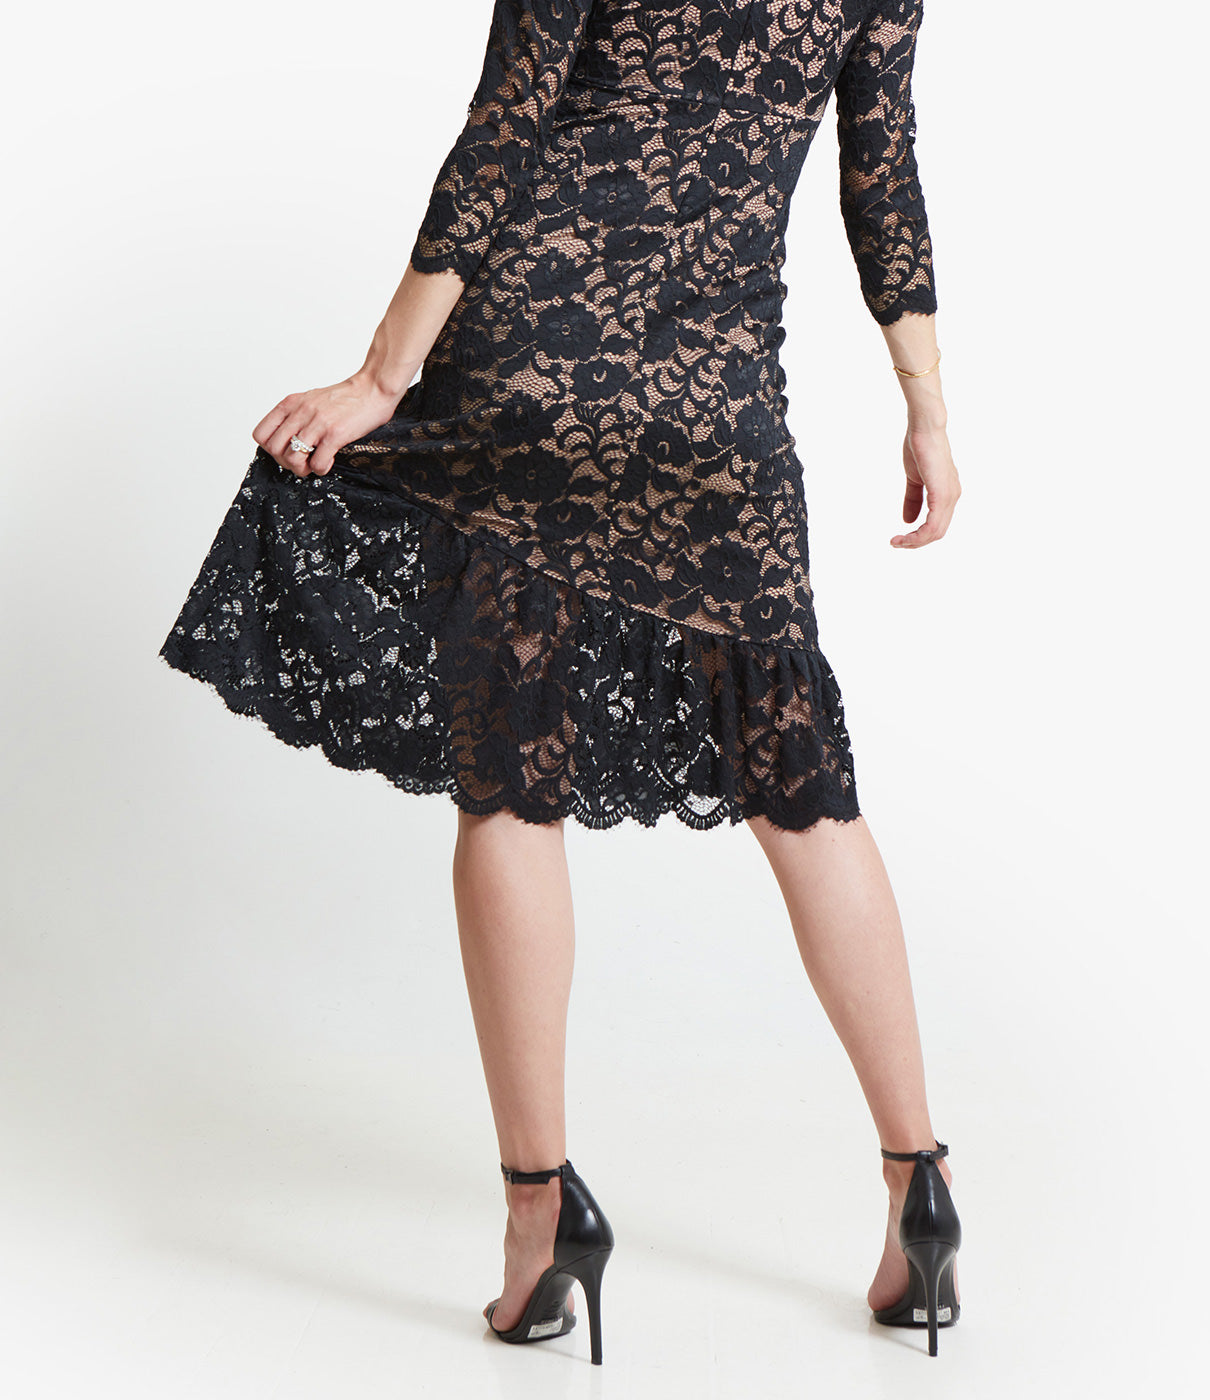 MAXIMUM MOVEMENTStretch lace and a breezy flounce skirt make this dress as easy to move in as it is to style.